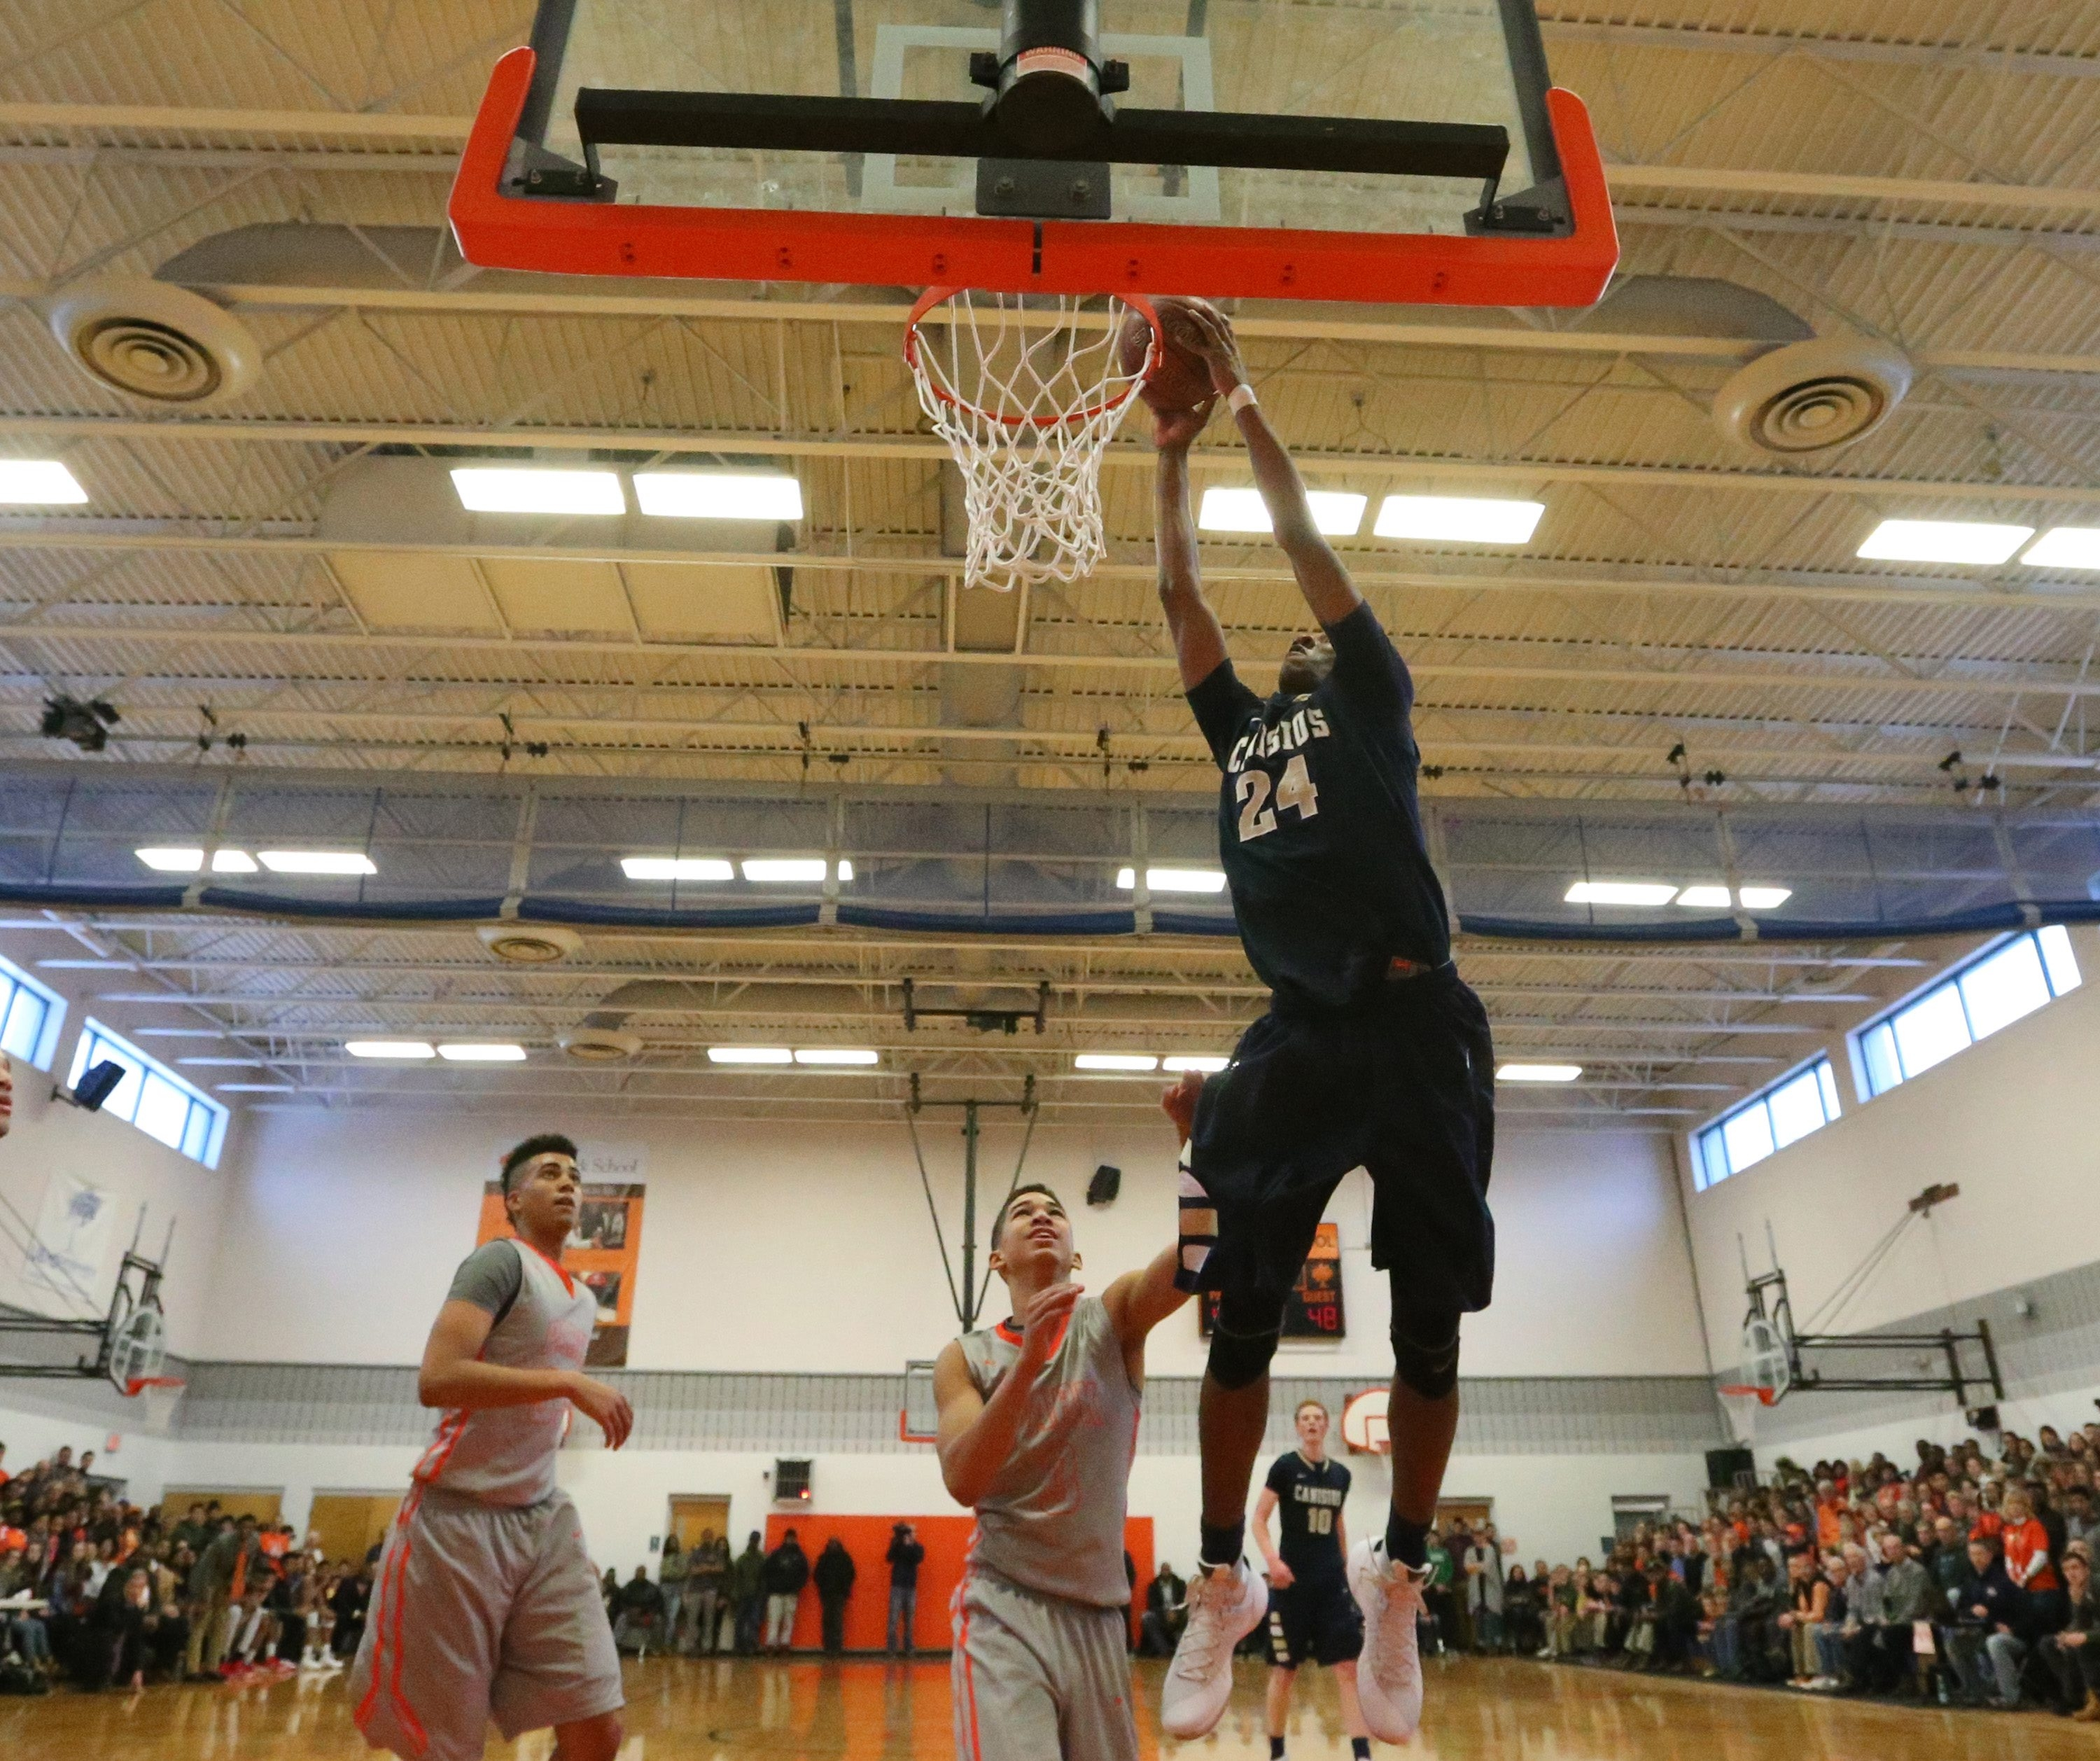 Senior forward Stafford Trueheart strikes for two points while leading Canisius to a 56-53 victory over Park in a battle between reigning New York State Federation champions at Park School.